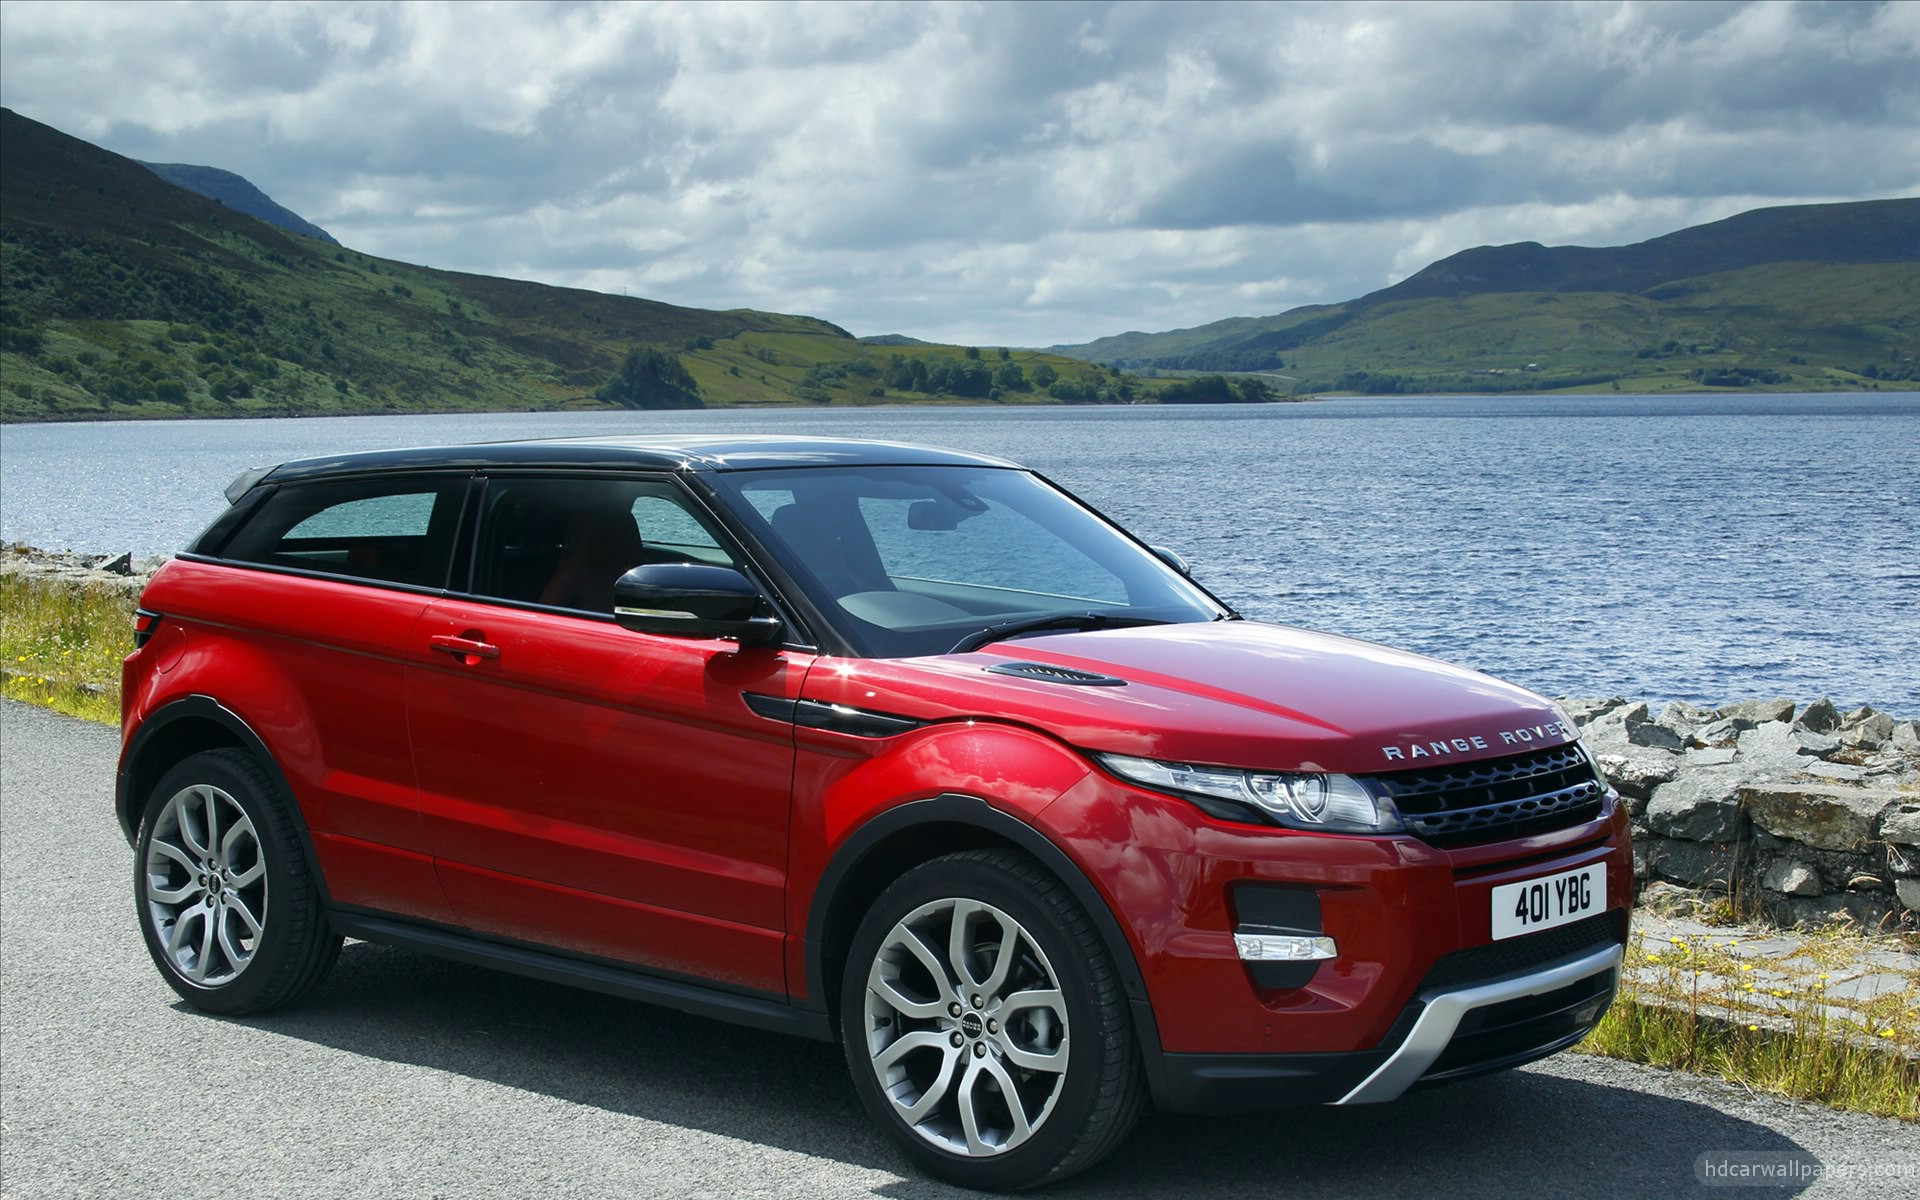 range rover evoque 2012 wallpaper hd car wallpapers id 2169. Black Bedroom Furniture Sets. Home Design Ideas